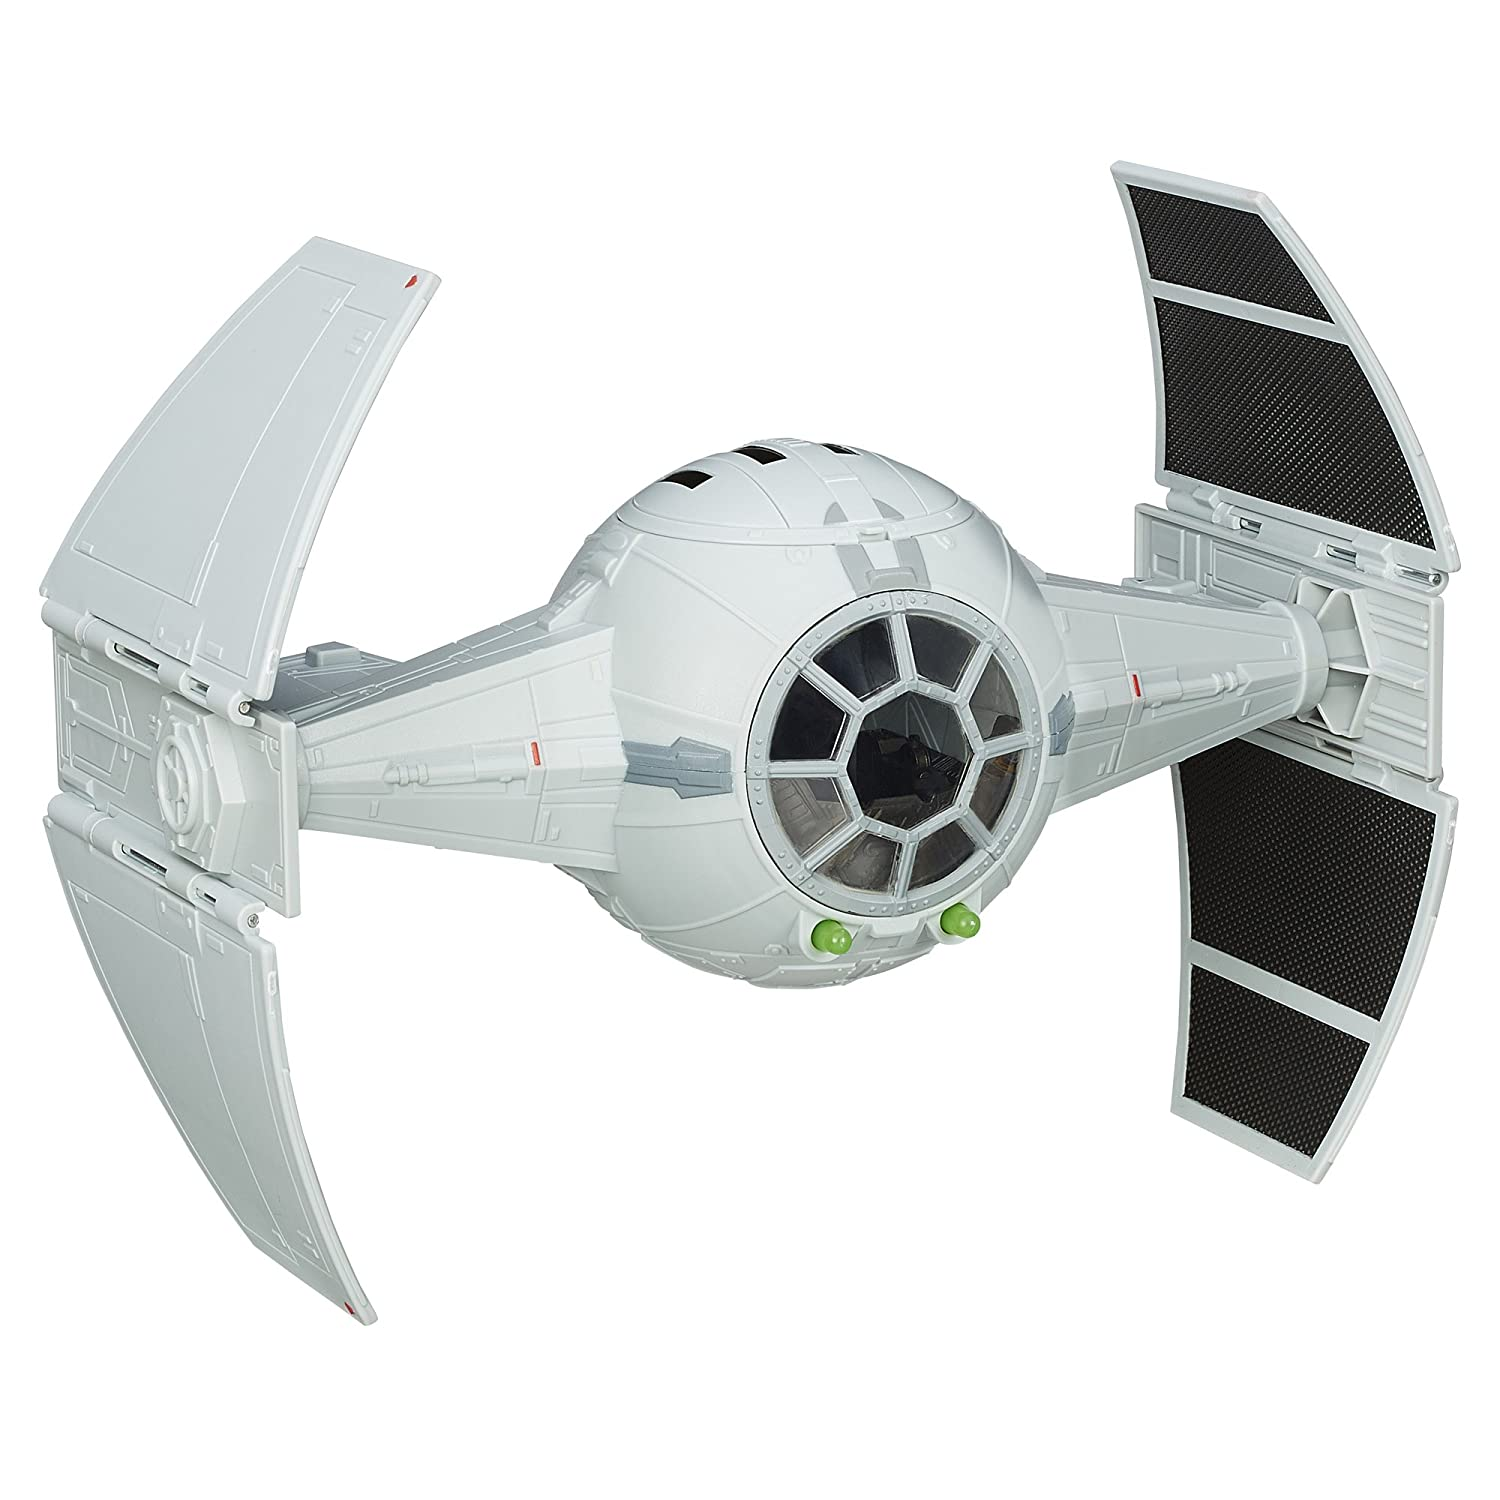 Star Wars Rebel Vehicle Inquisitor - Corbata: Amazon.es: Juguetes ...